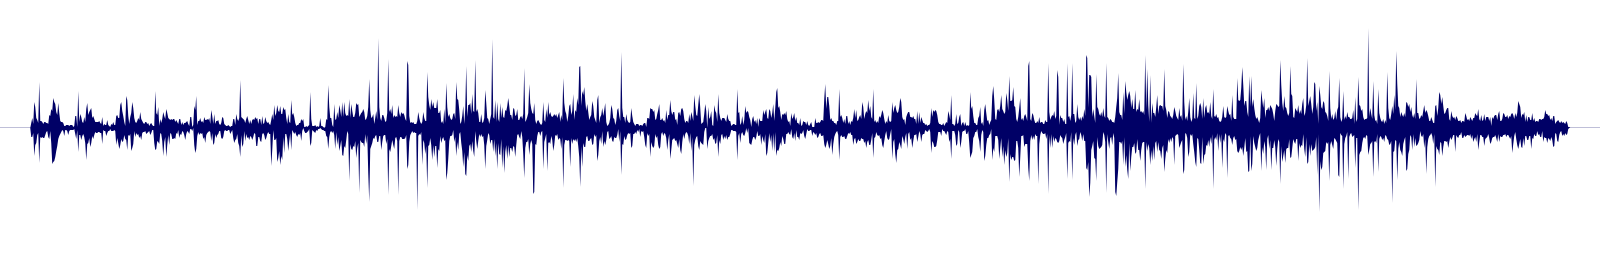 waveform of track #90625